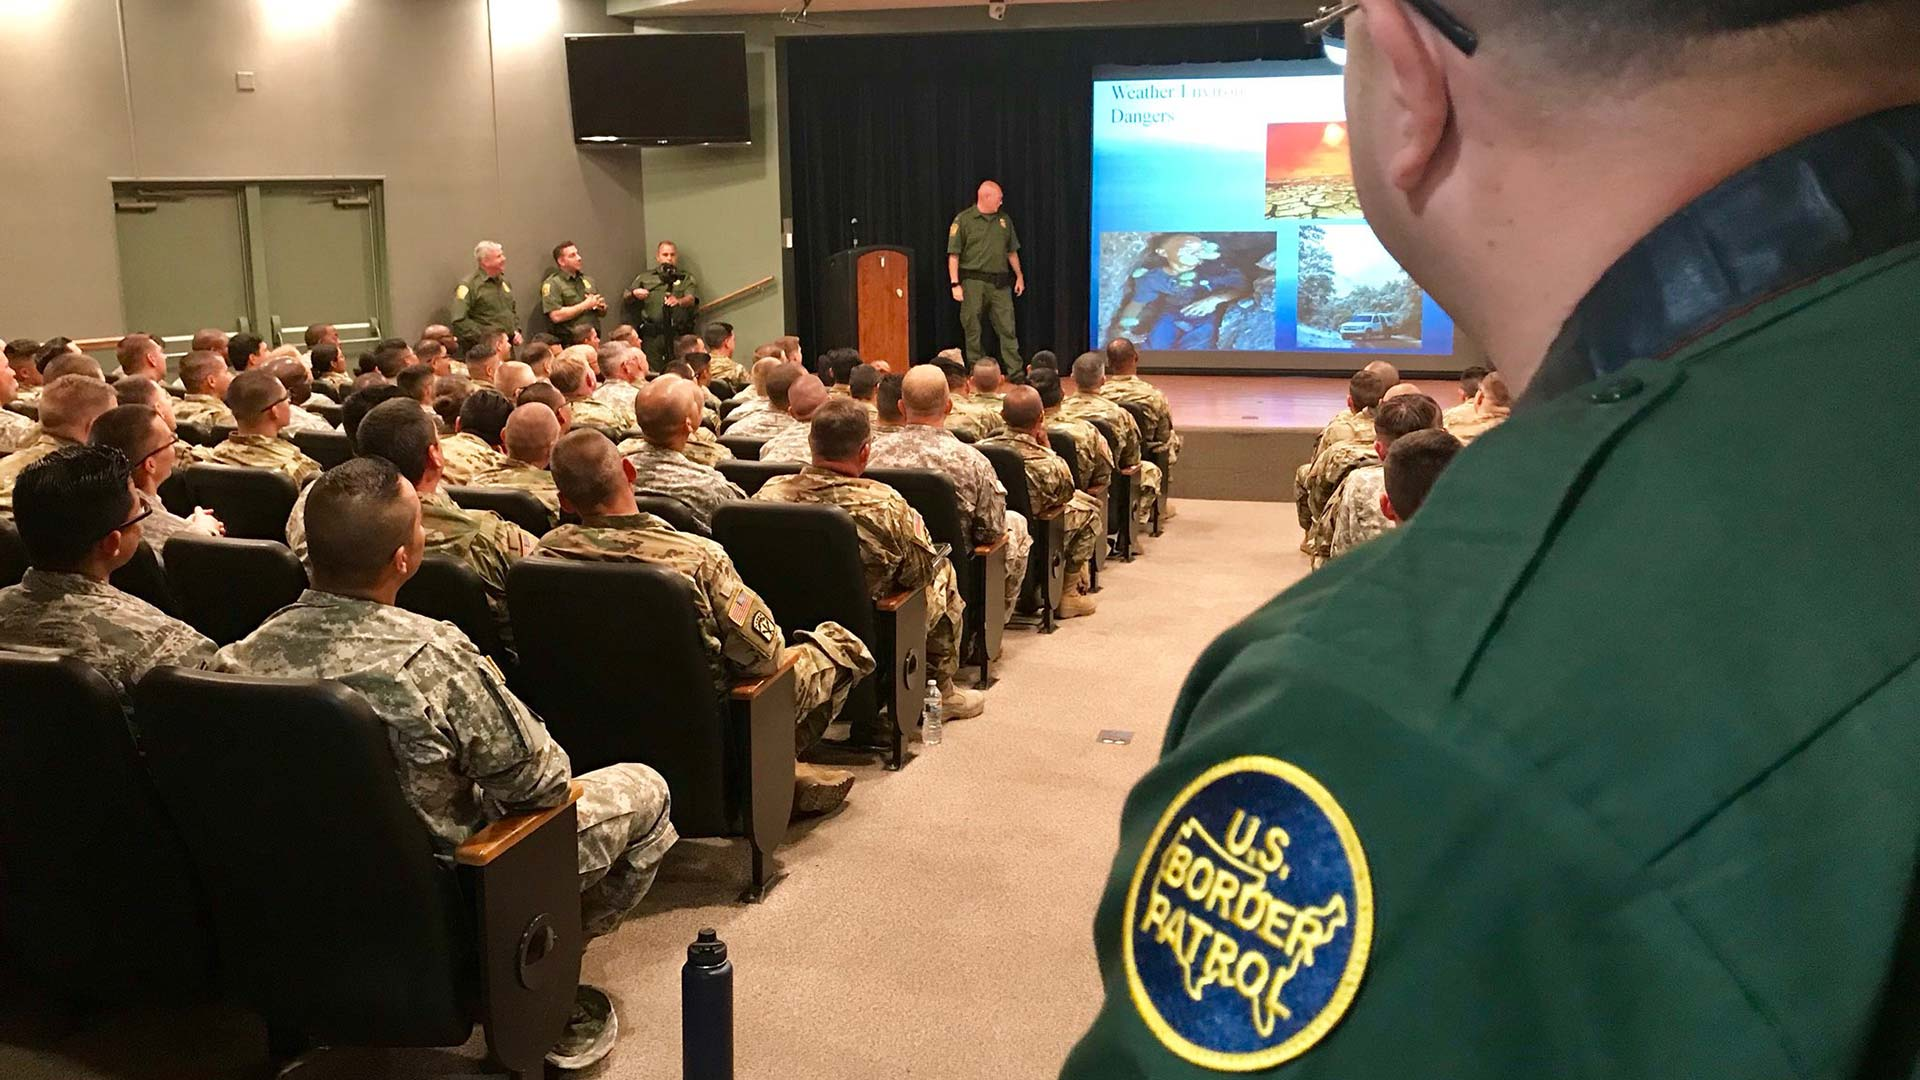 Arizona National Guard members being briefed by Customs and Border Protection on Operation Guardian Shield, posted April 11, 2018.